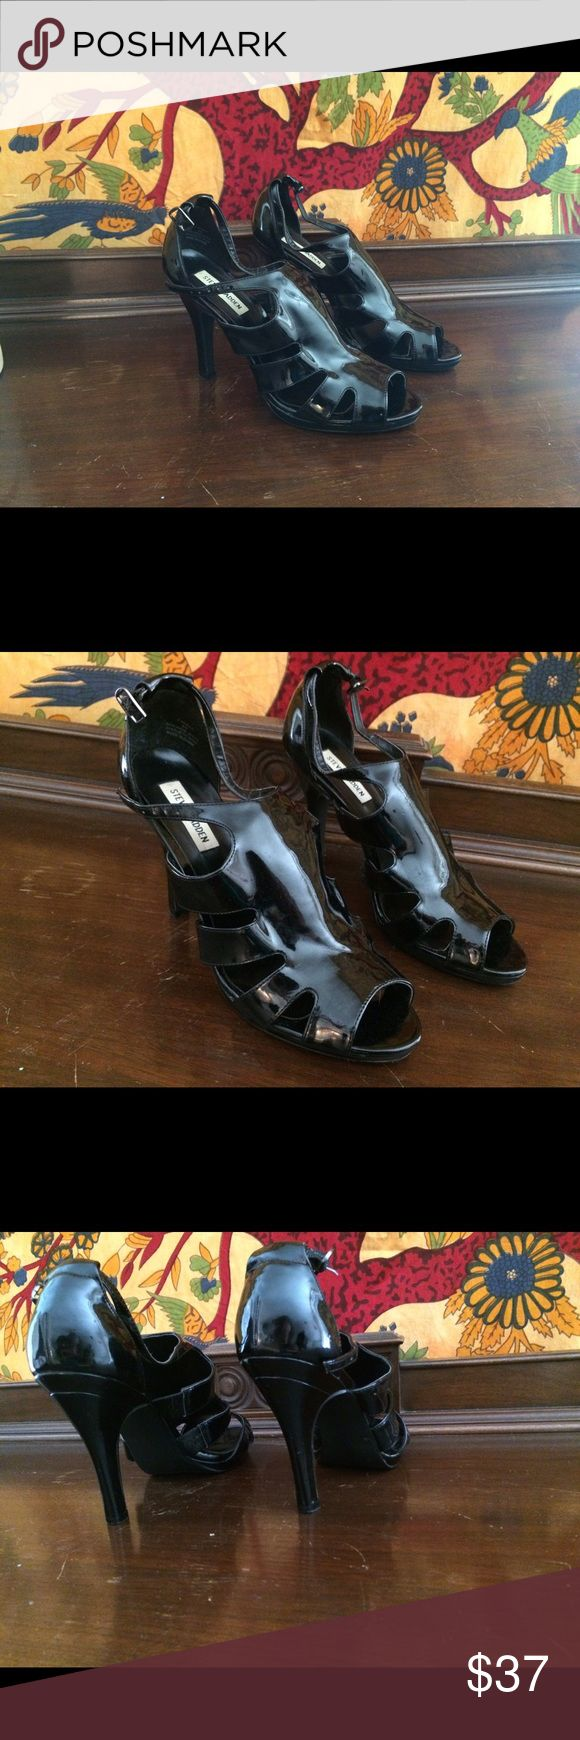 """Steve Madden Black Heels Steve Madden black patent leather caged heels. Size 9 1/2 with a 2 1/2"""" heel. Lightly worn but great condition. Steve Madden Shoes Heels"""